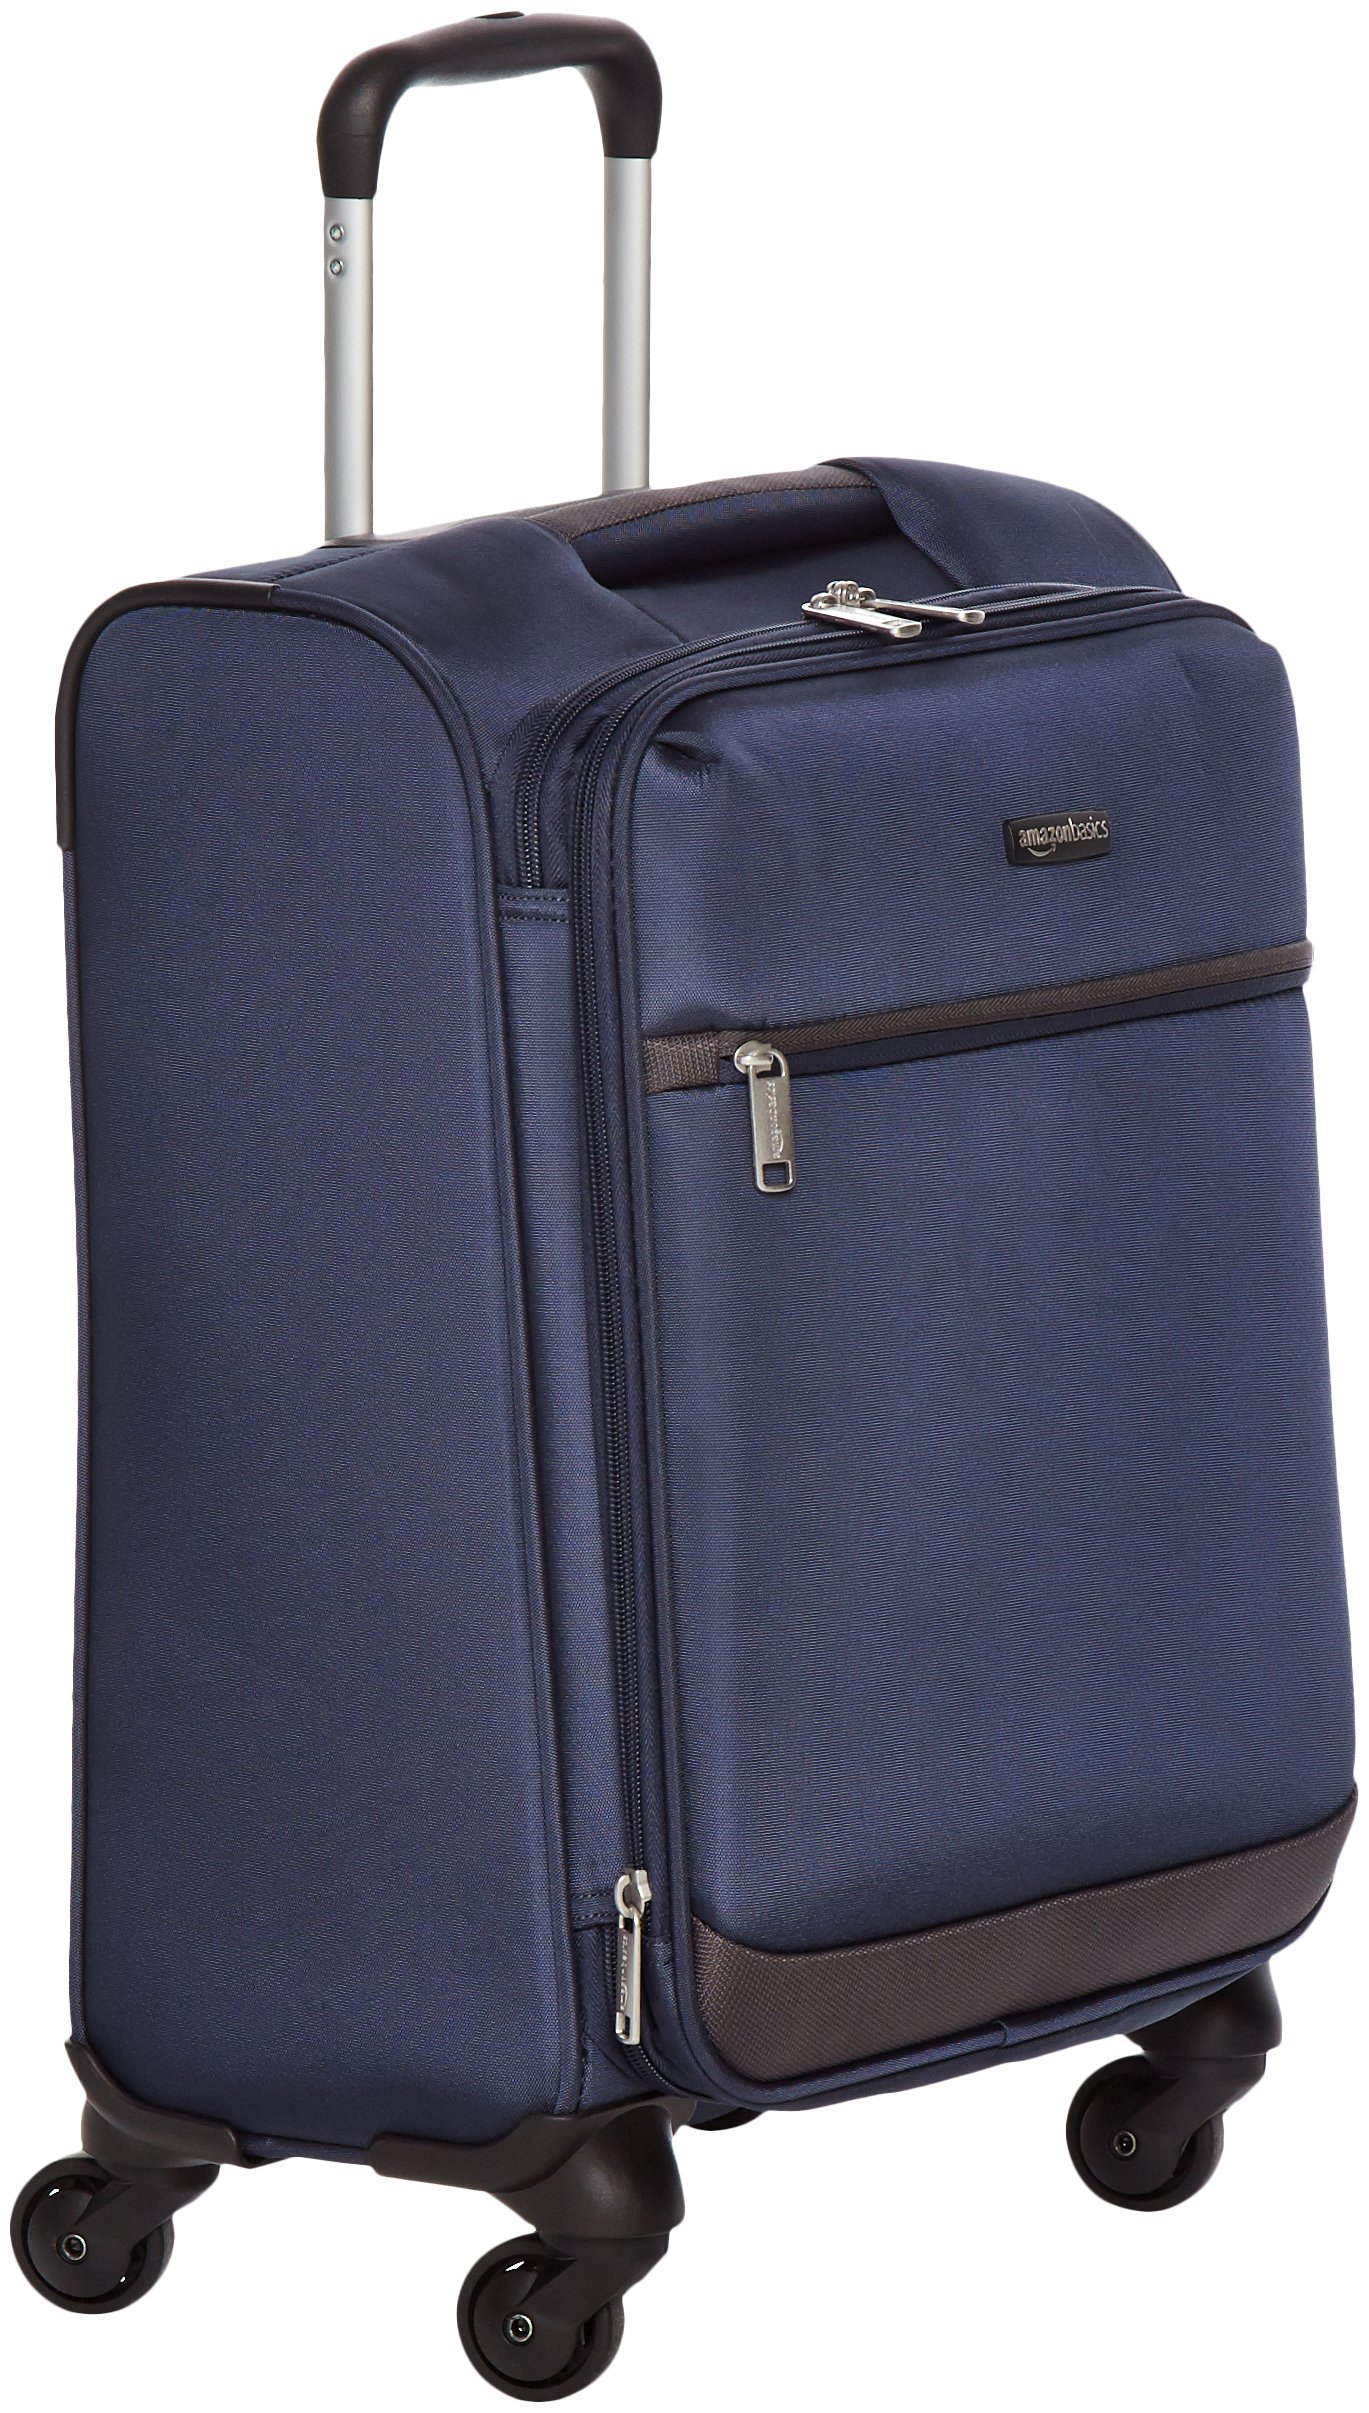 AmazonBasics Softside Carry-On Spinner Luggage Suitcase - 21 Inch, Navy Blue by AmazonBasics